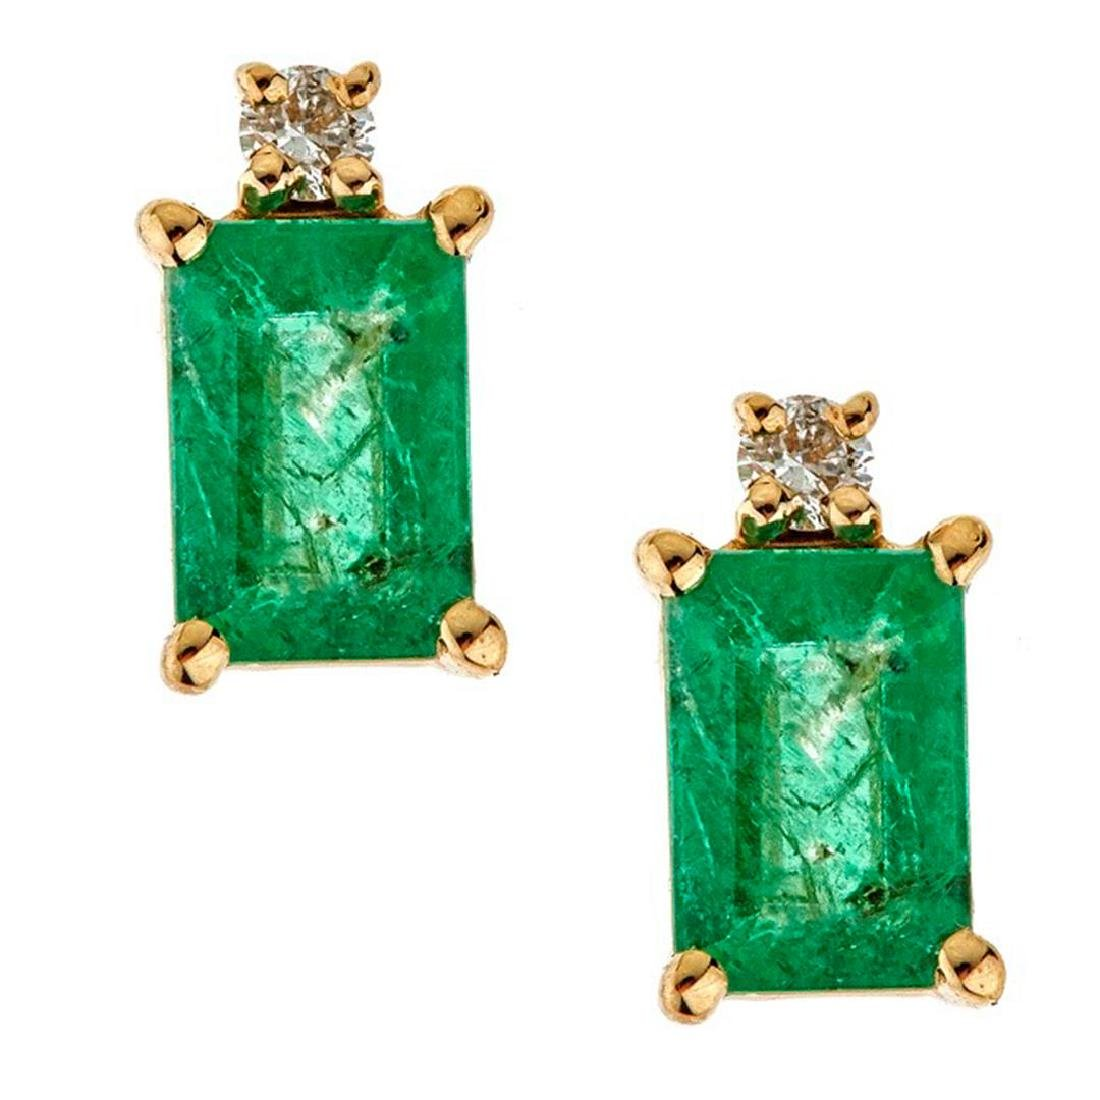 1.13 ctw Emerald and Diamond Earrings - 14KT Yellow